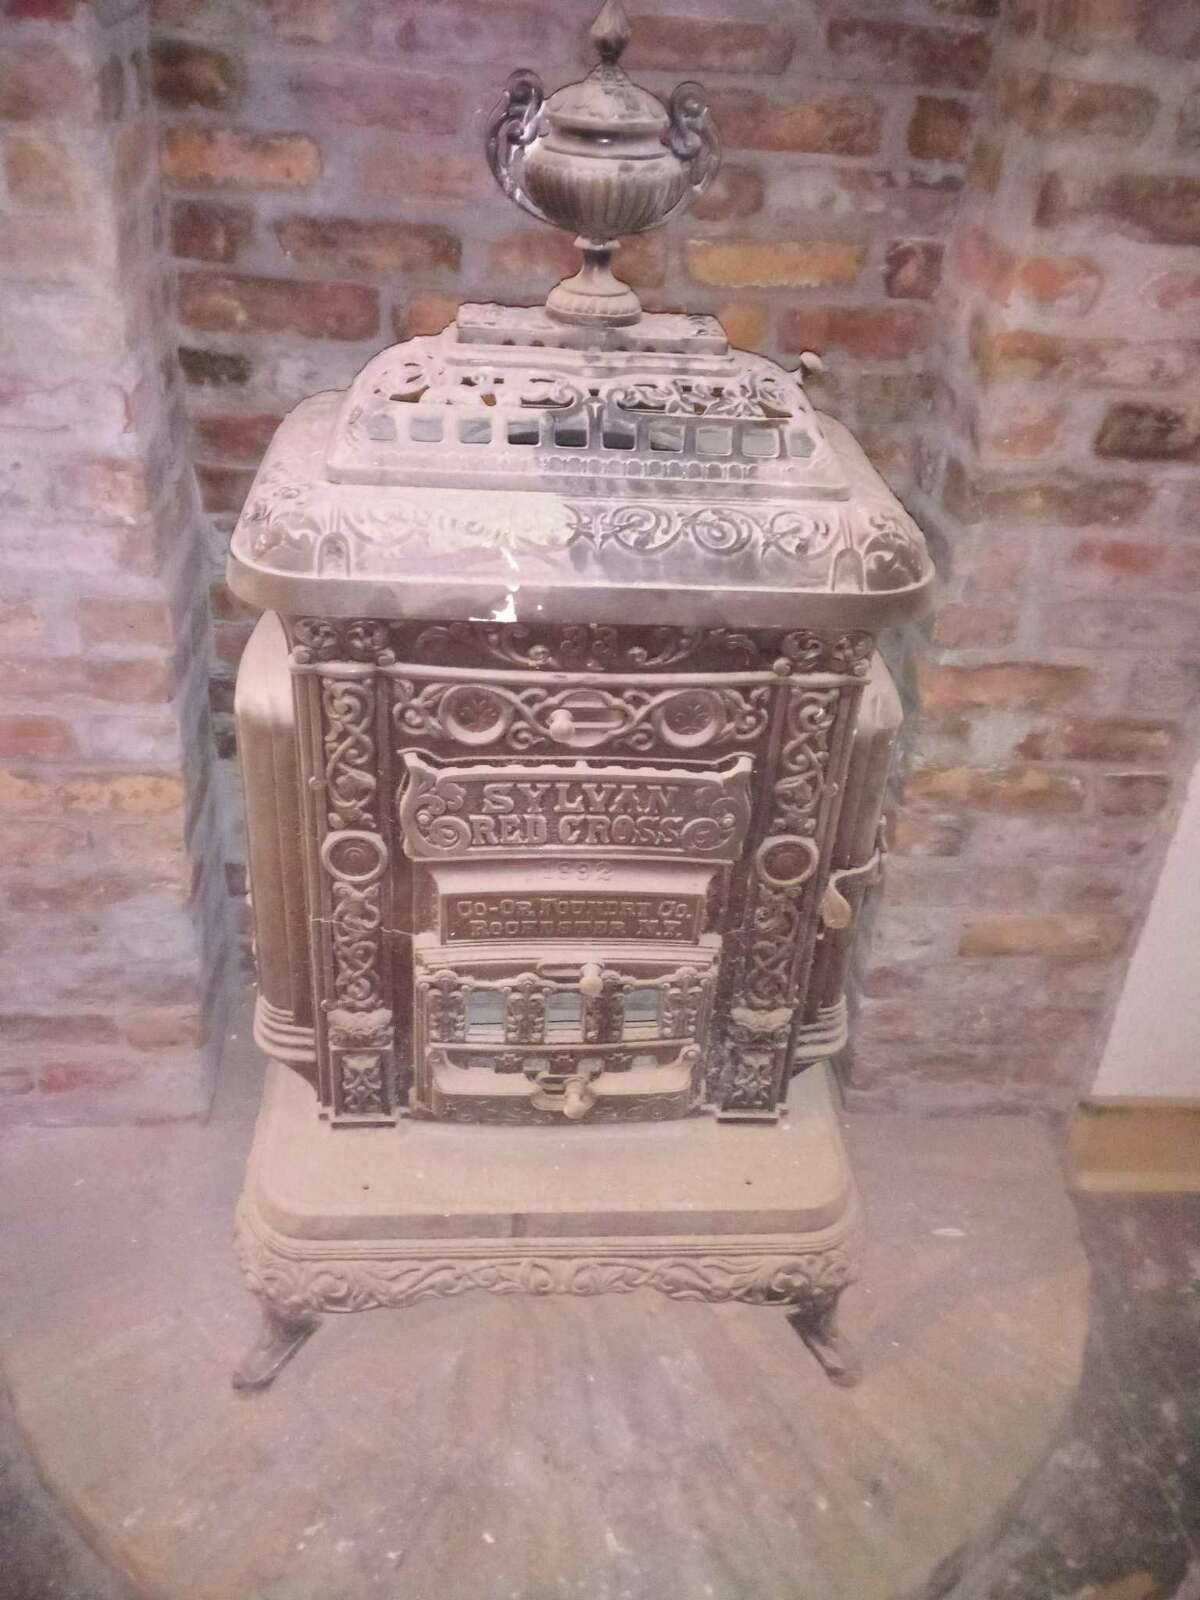 Carlo and Michelle Pulixi of New Hartford plan to open Geppetto, an Italian steak house and bar, at 26 E. Main St., the former site of O'Connor's Public House. The couple has spent the summer renovating the space with old-world decor and using treasures found inside, such as this old stove.